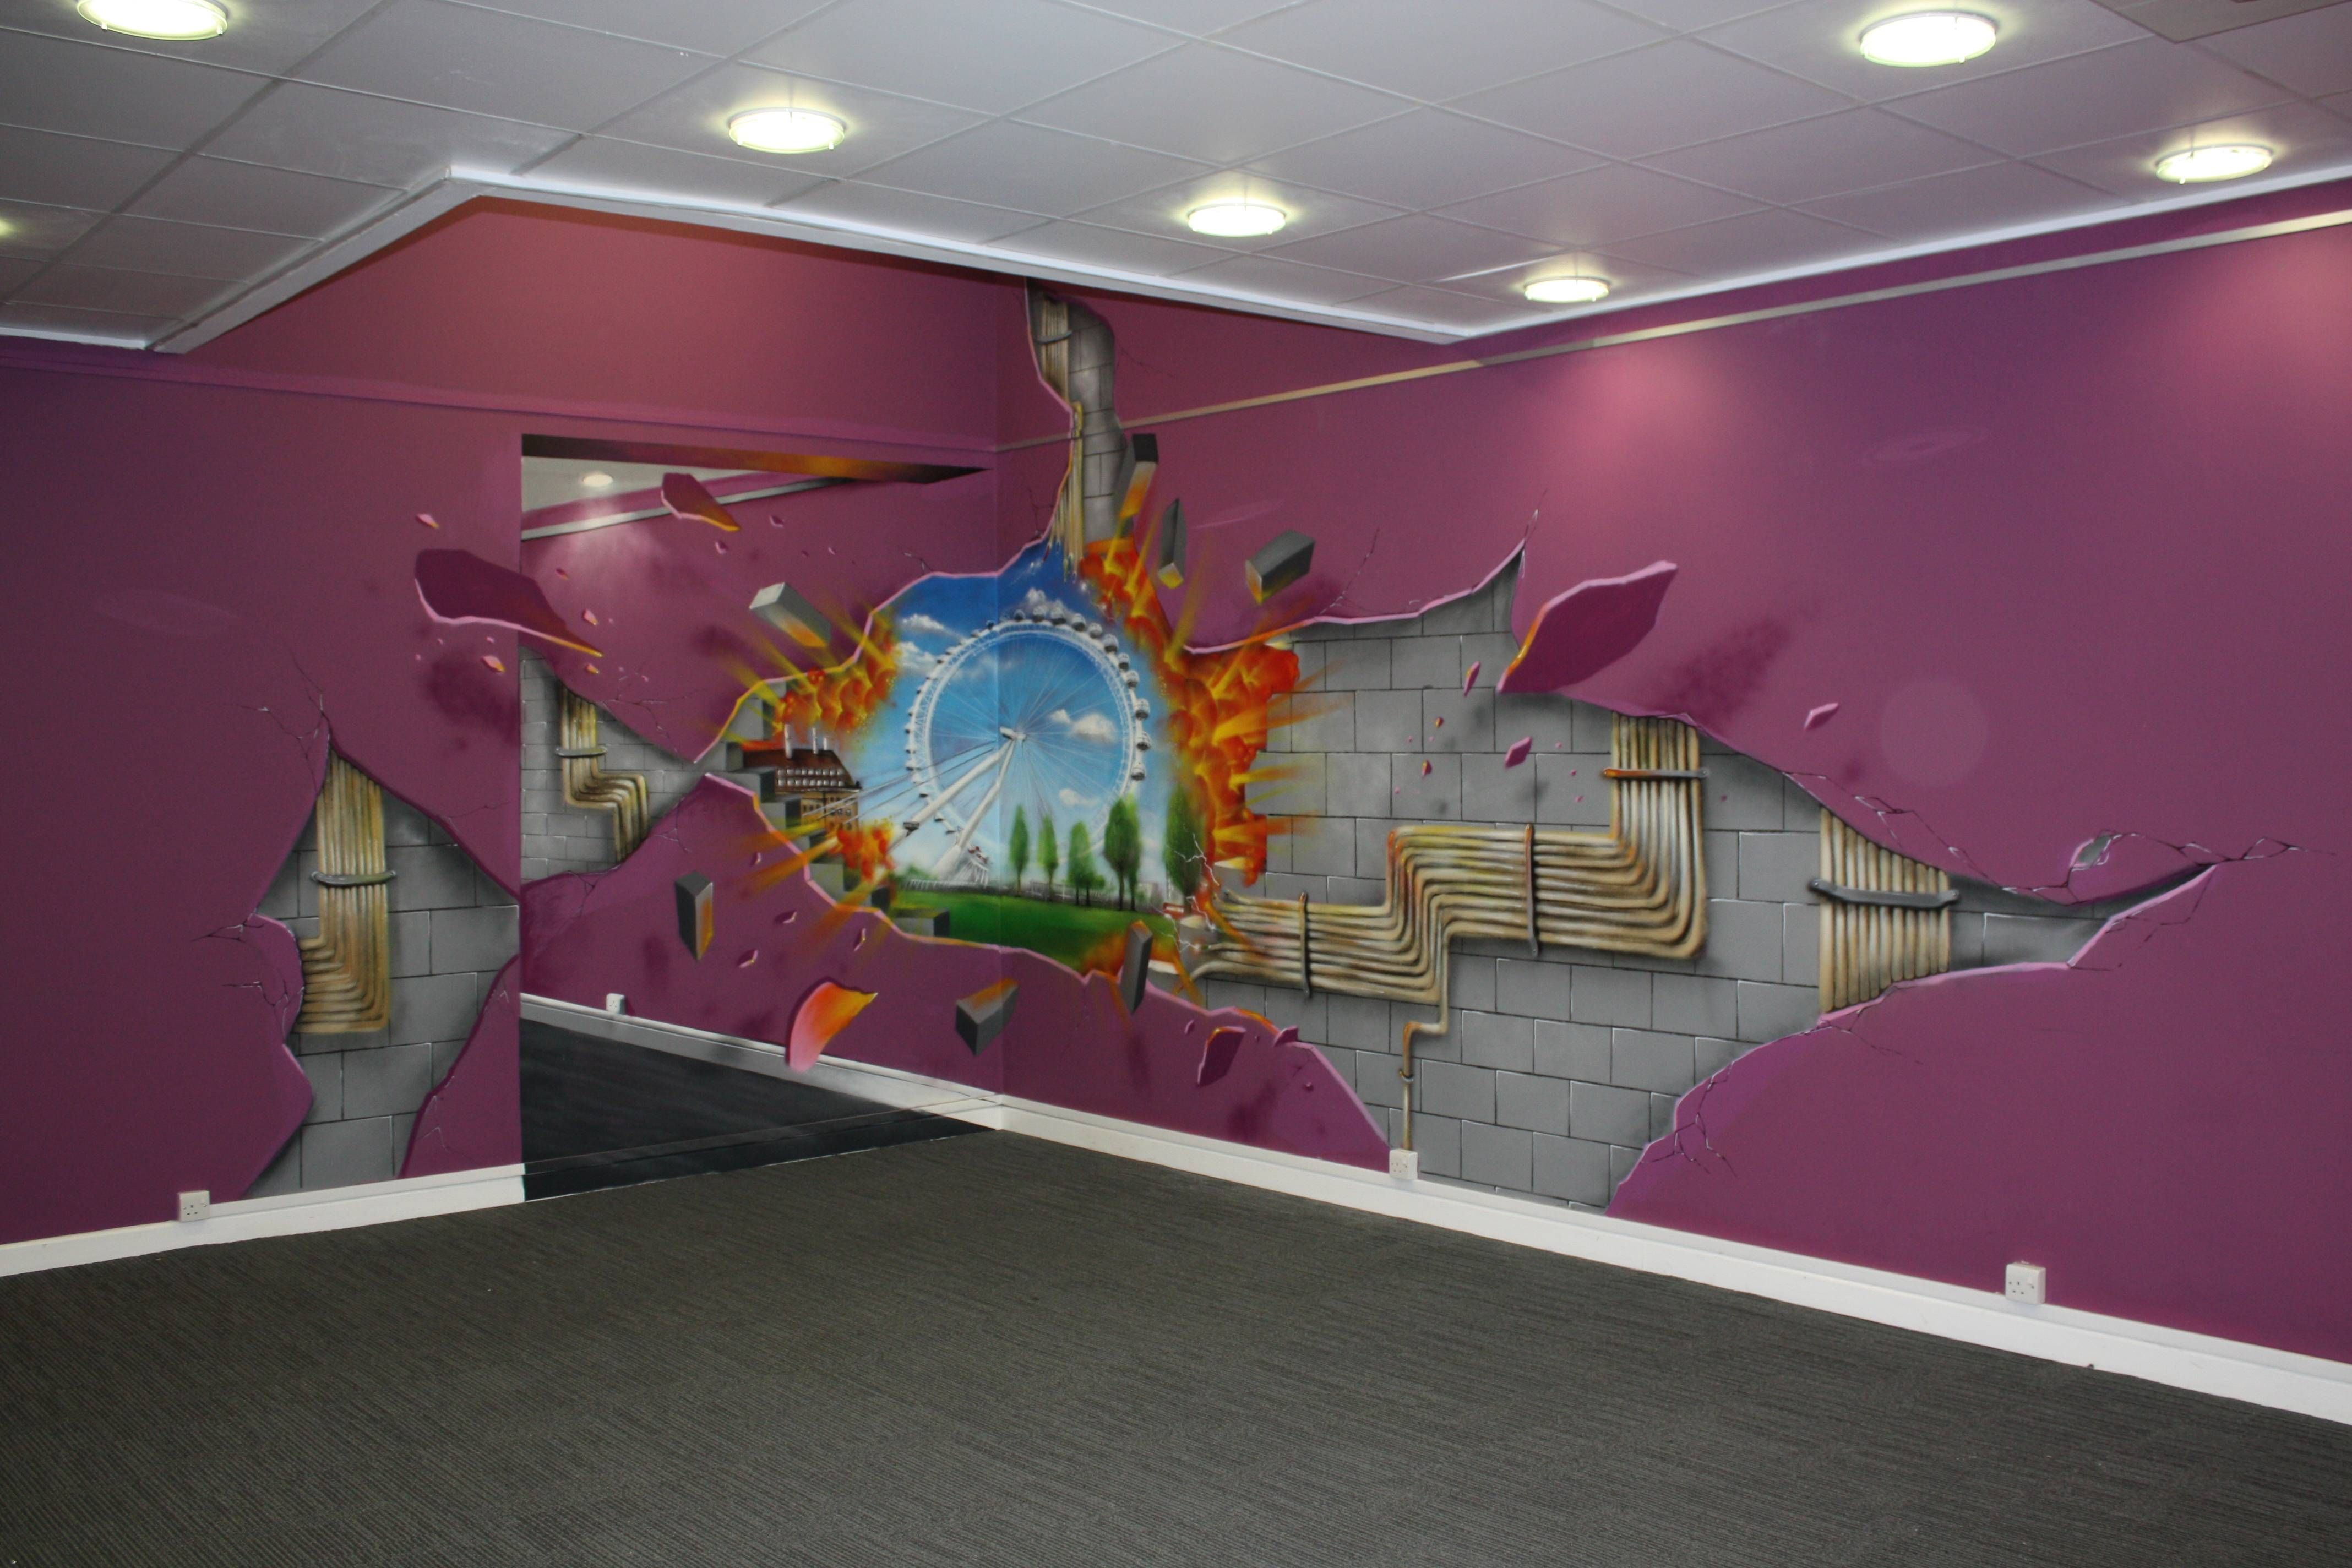 Stunts Illusion Art Can Also Created Walls – Dma Homes | #4737 Throughout Most Recent Illusion Wall Art (View 19 of 20)